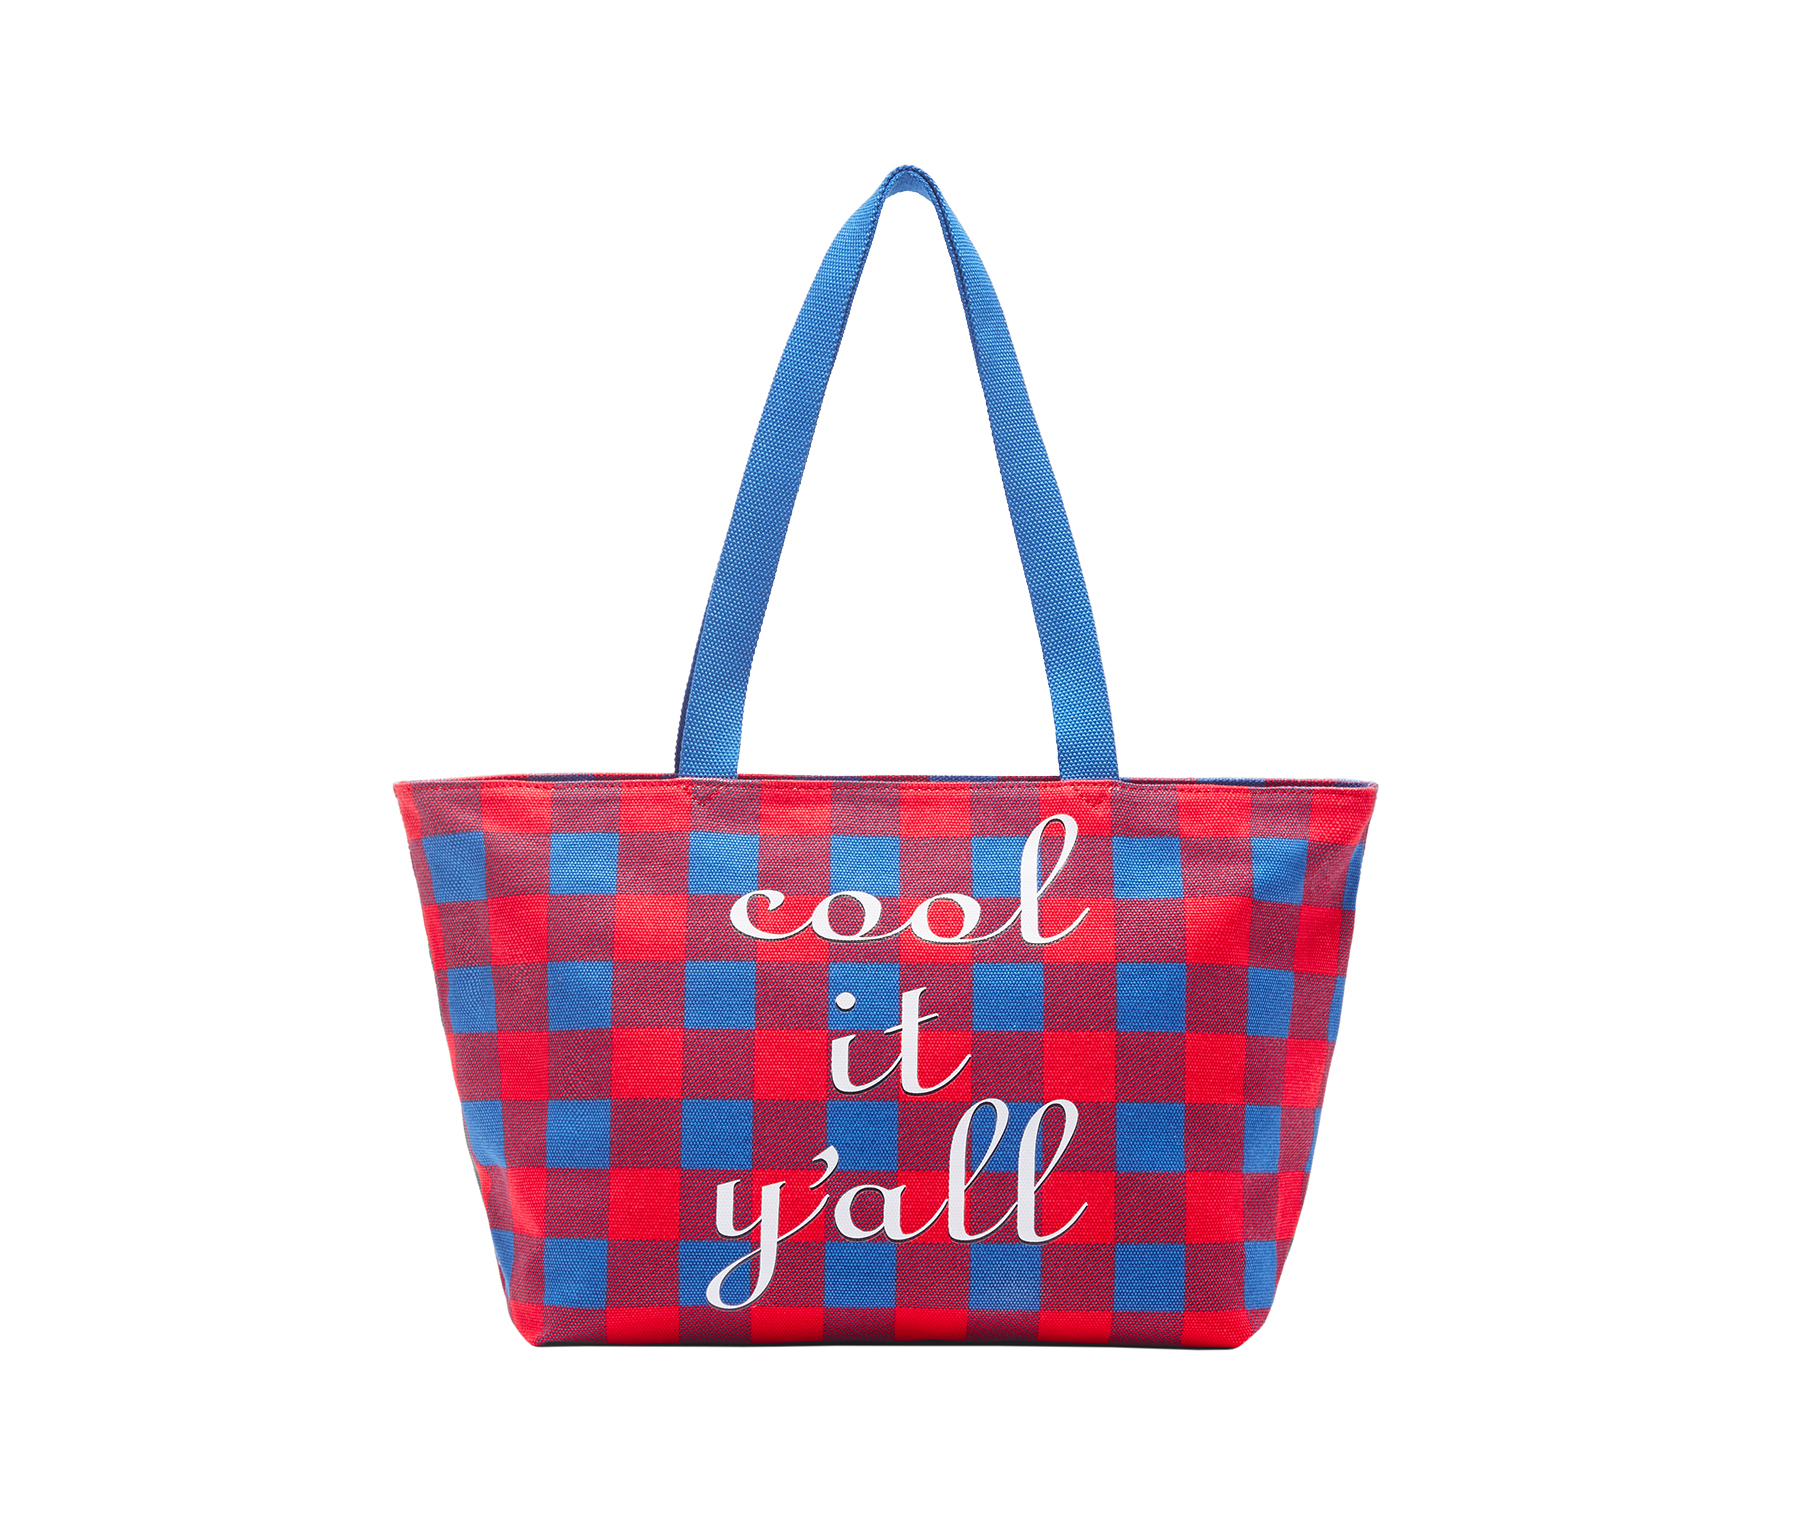 Spirit Cool It Y'all Tote